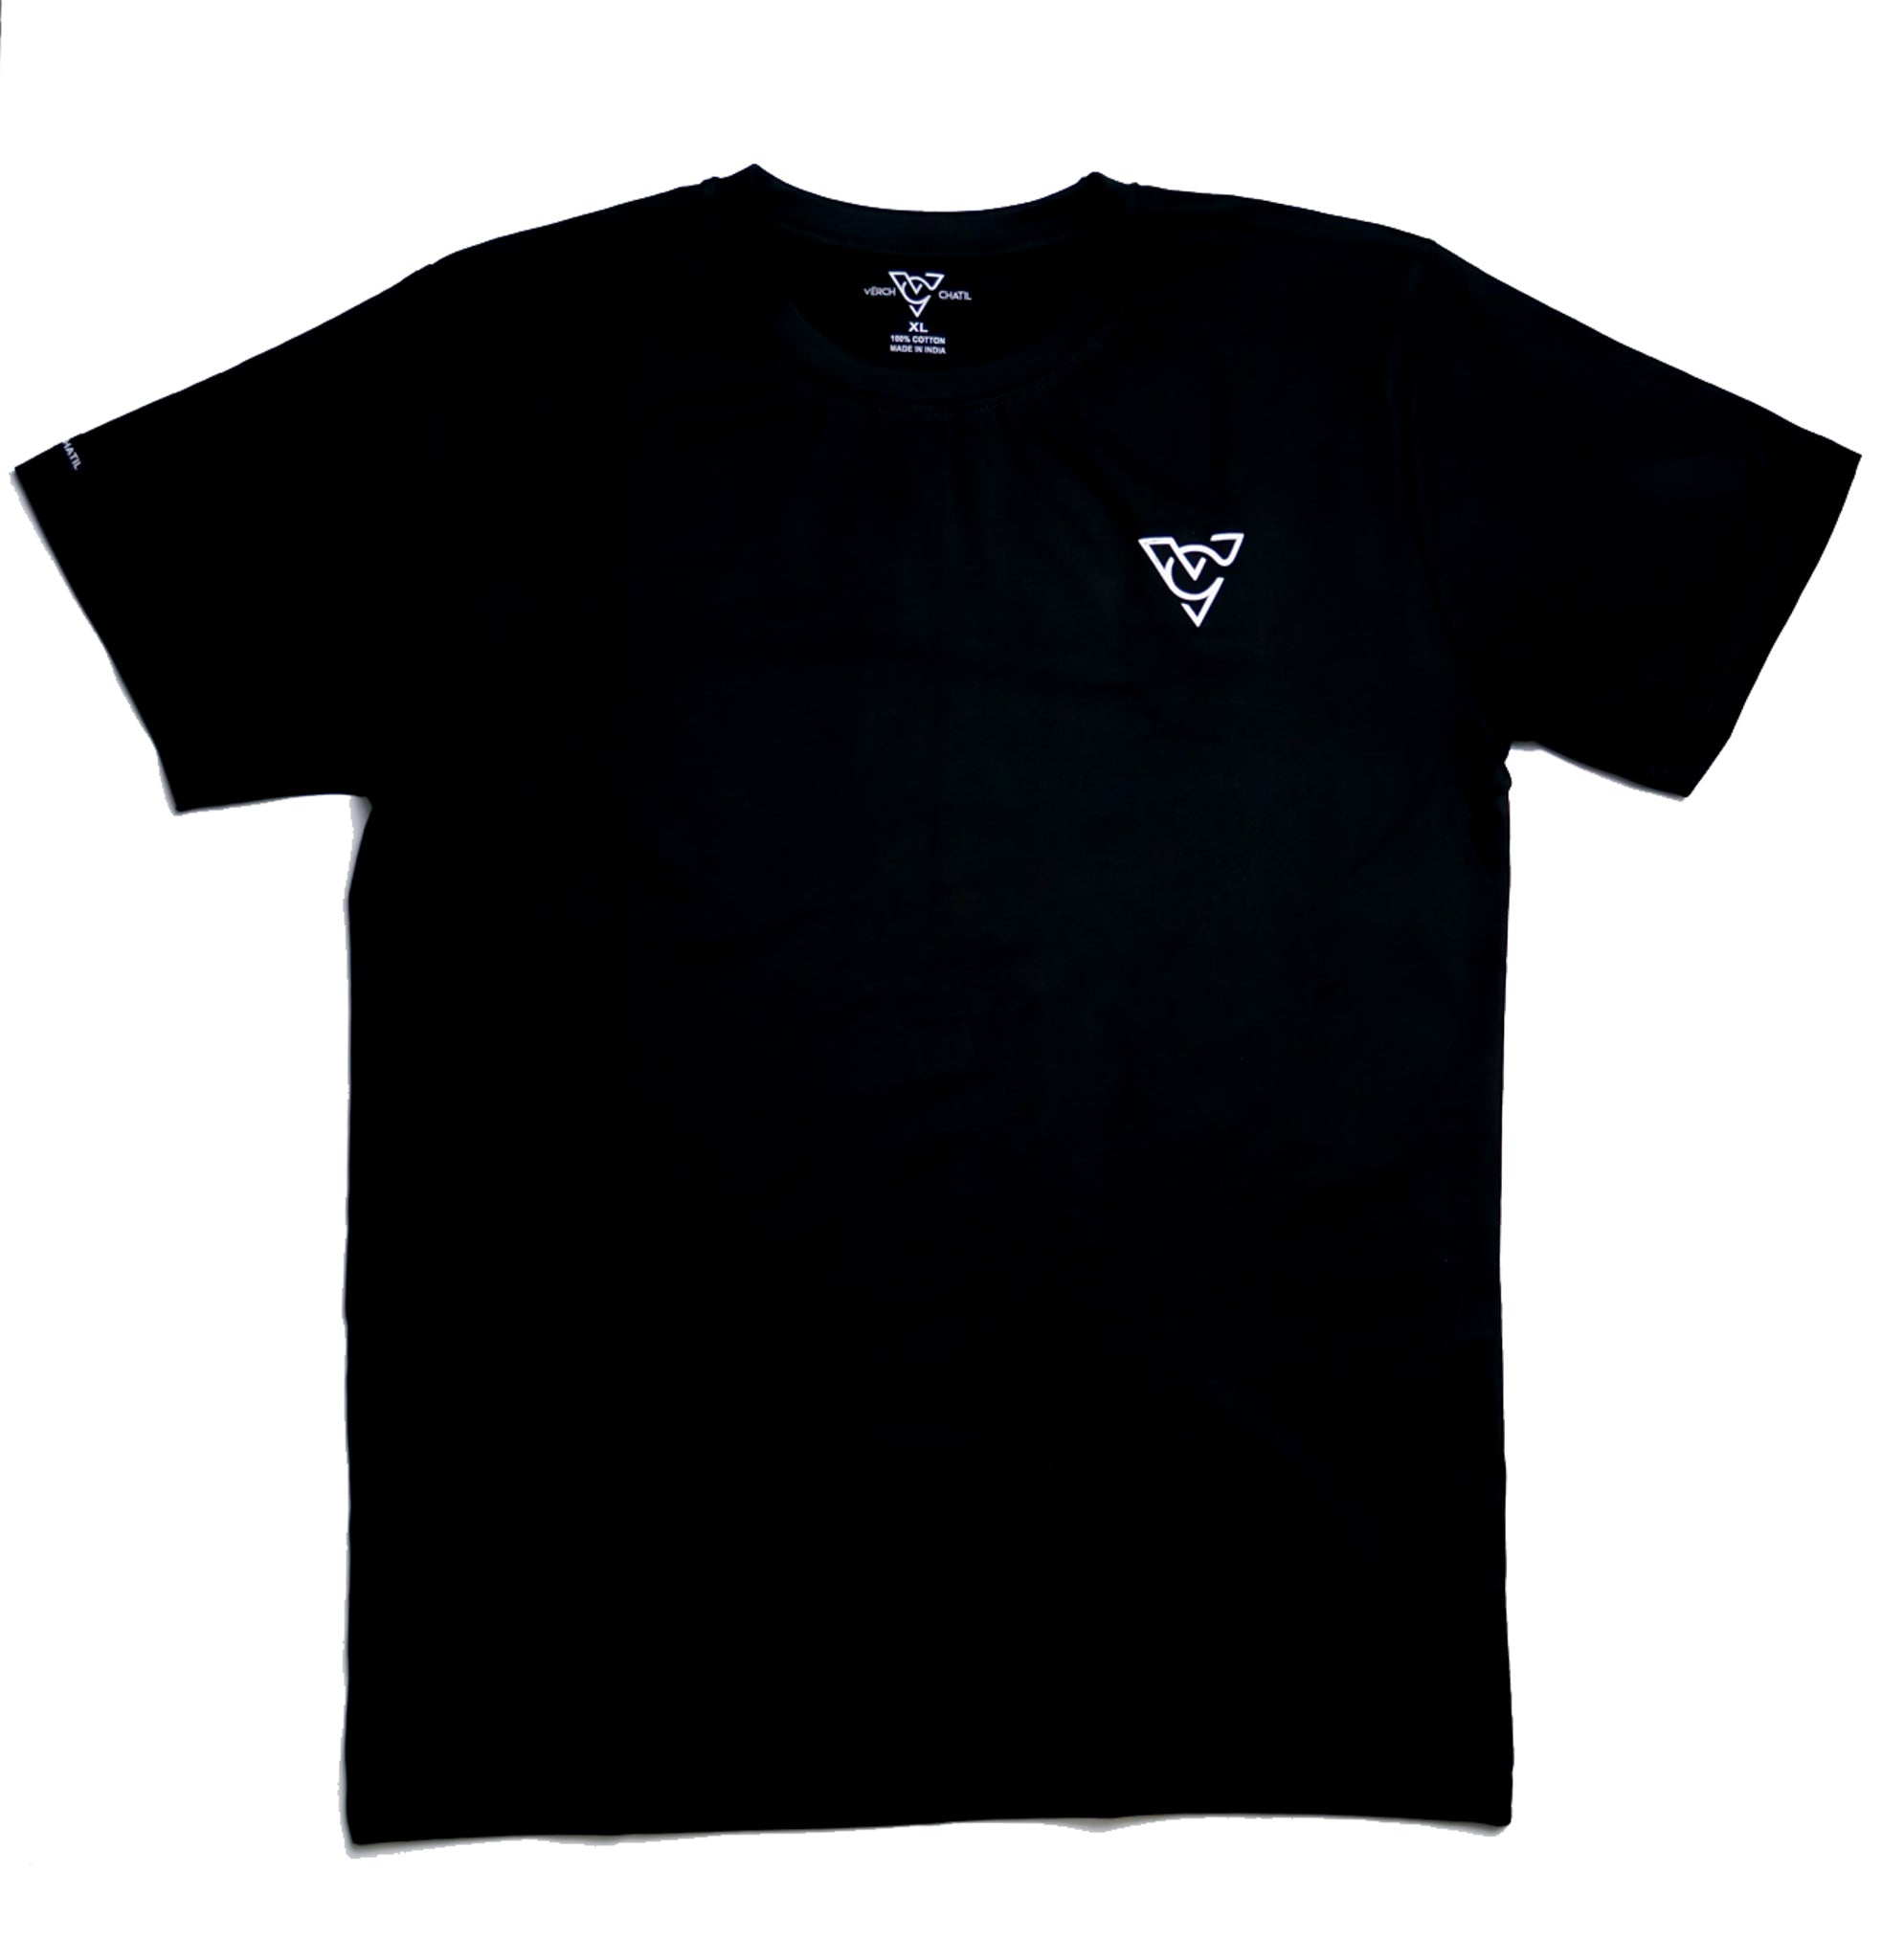 Verch Short Sleeve Black Shirt Chest Logo